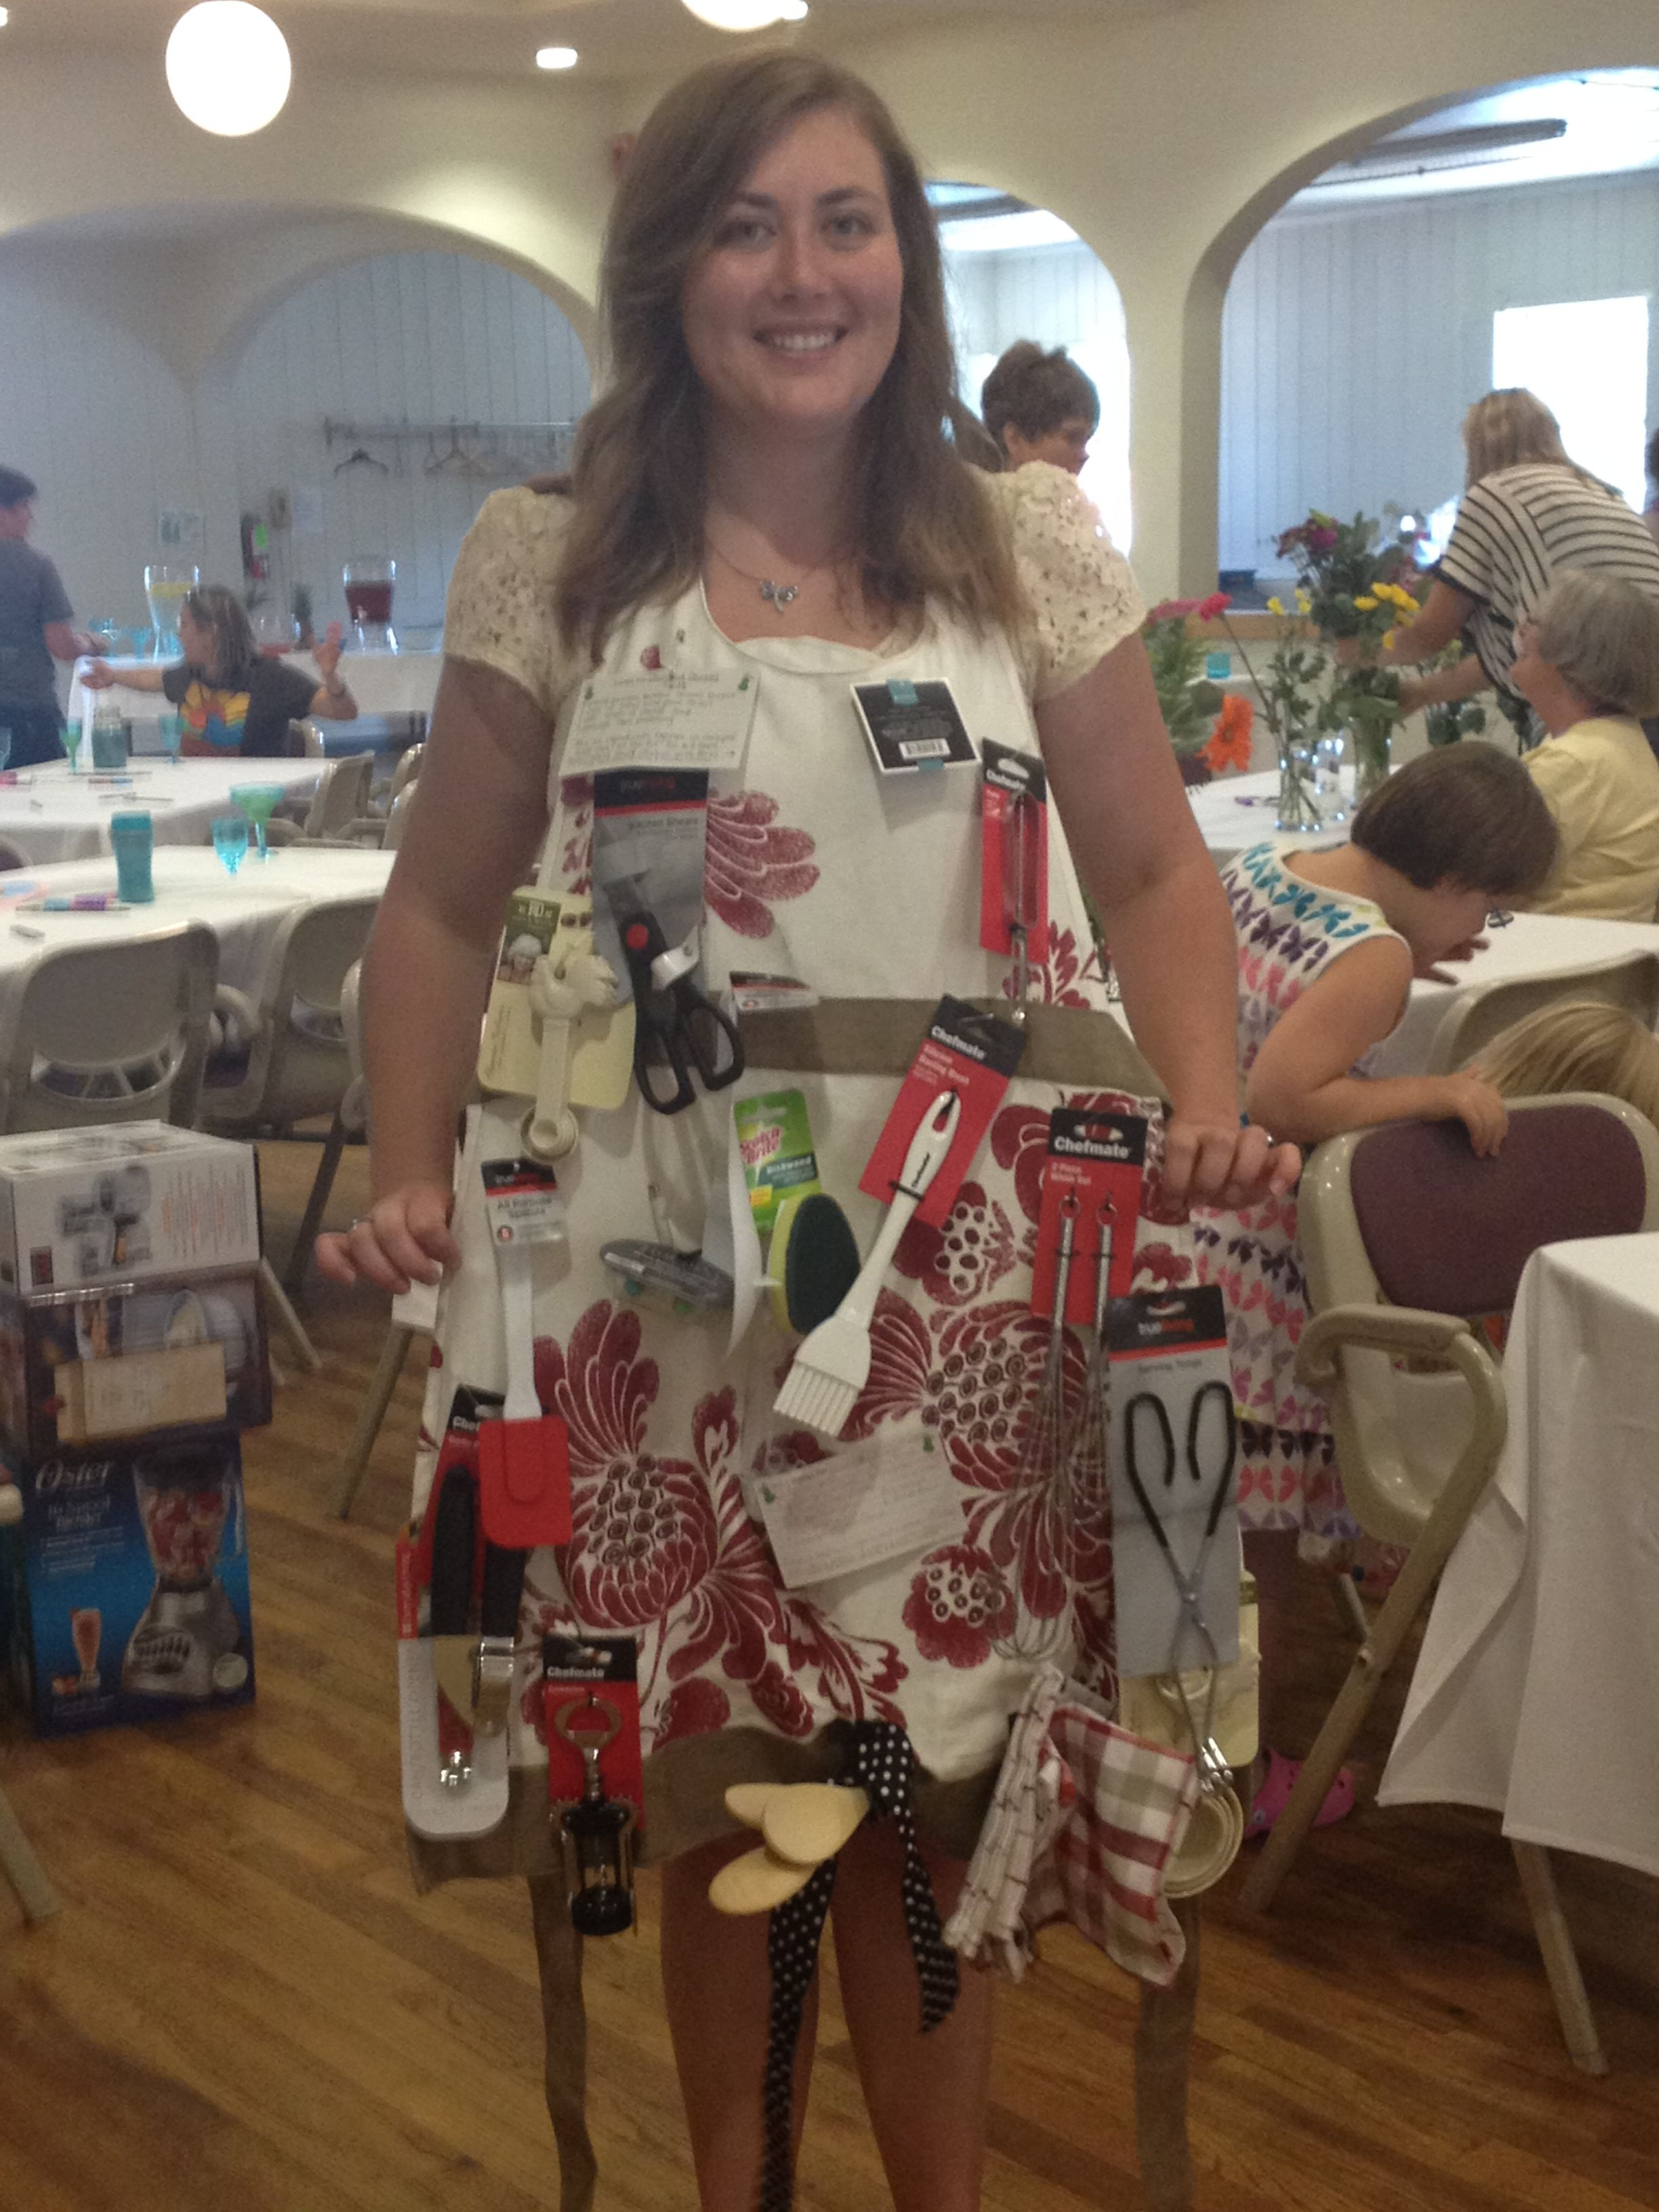 Wedding shower gift Apron with all the